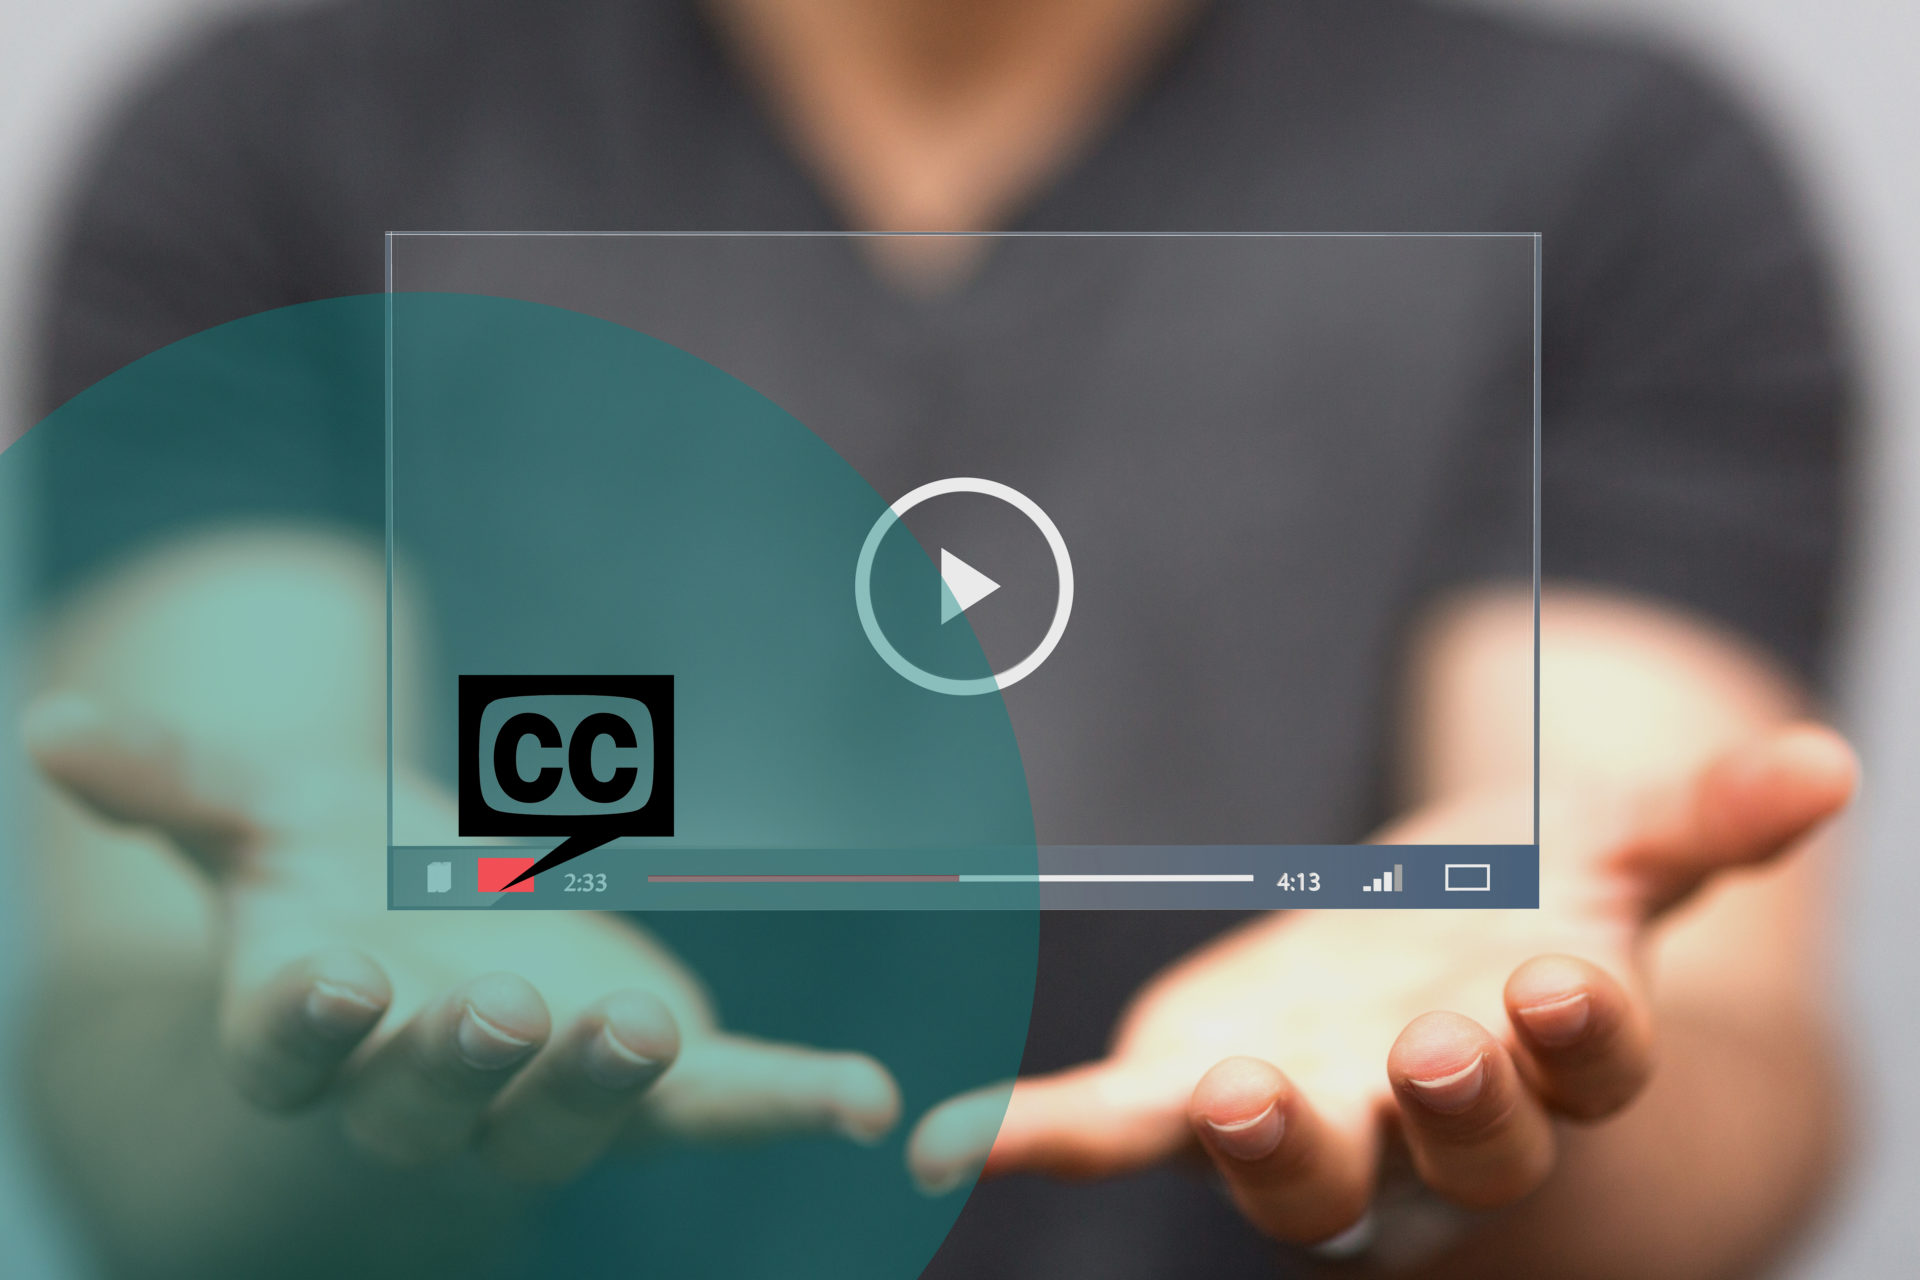 Background person with outstretched hands. Outline of closed captioned video in foreground.